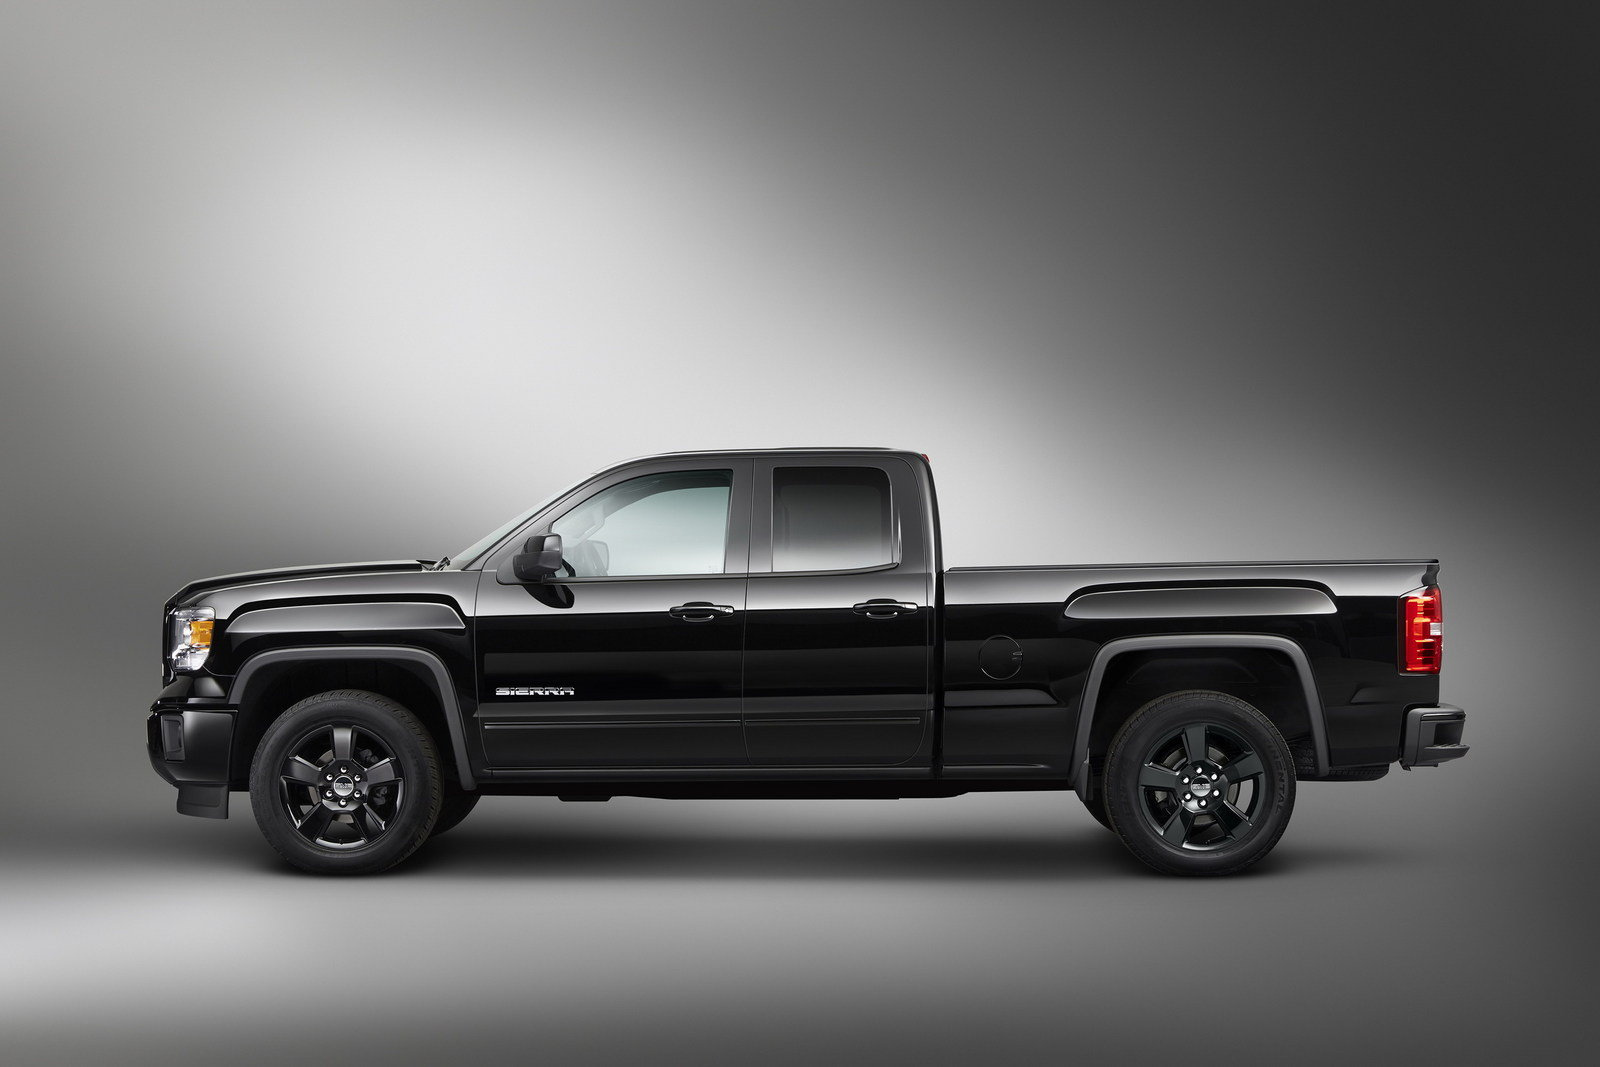 2015 gmc sierra elevation edition picture 569308 truck review top speed. Black Bedroom Furniture Sets. Home Design Ideas